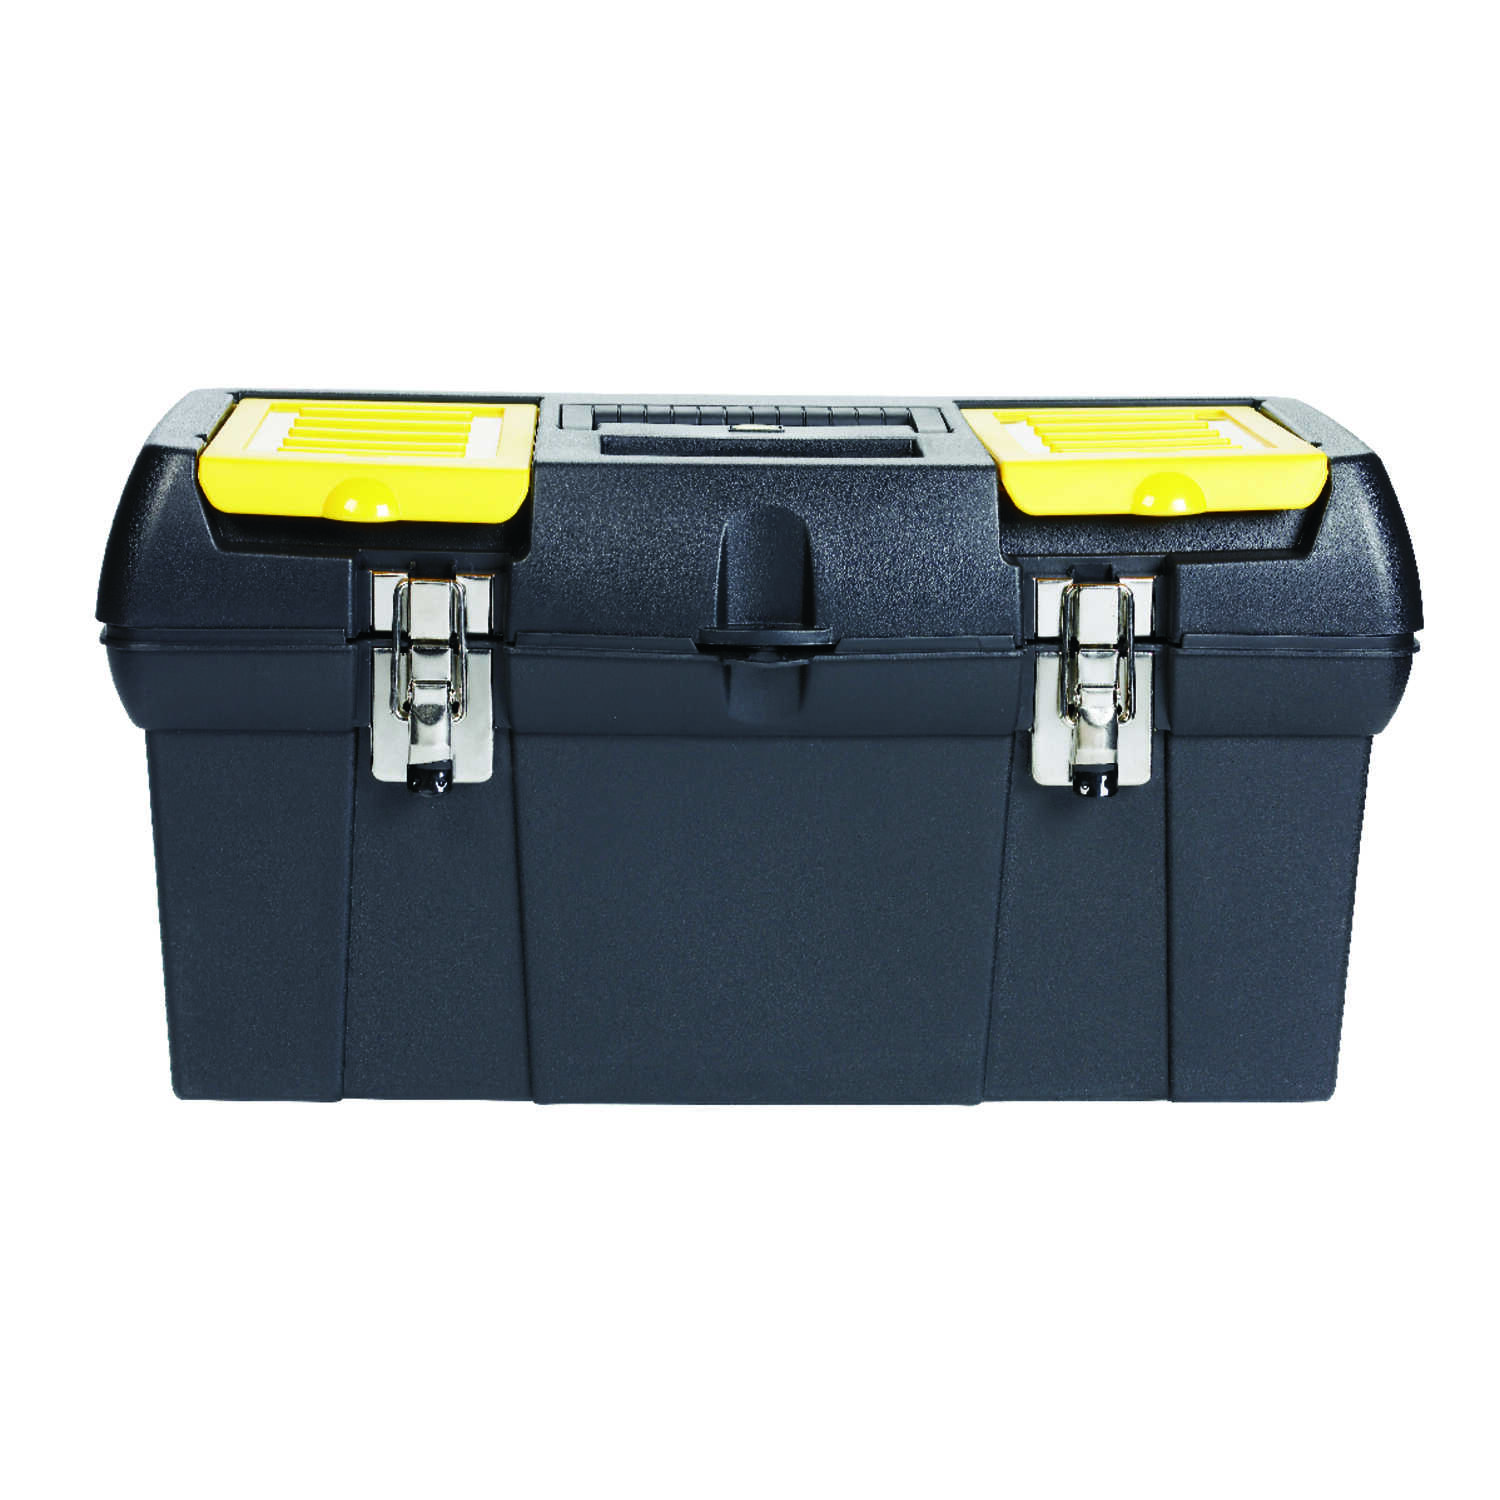 Stanley  9 in. Plastic  Toolbox  9 in. W x 4 in. H Black